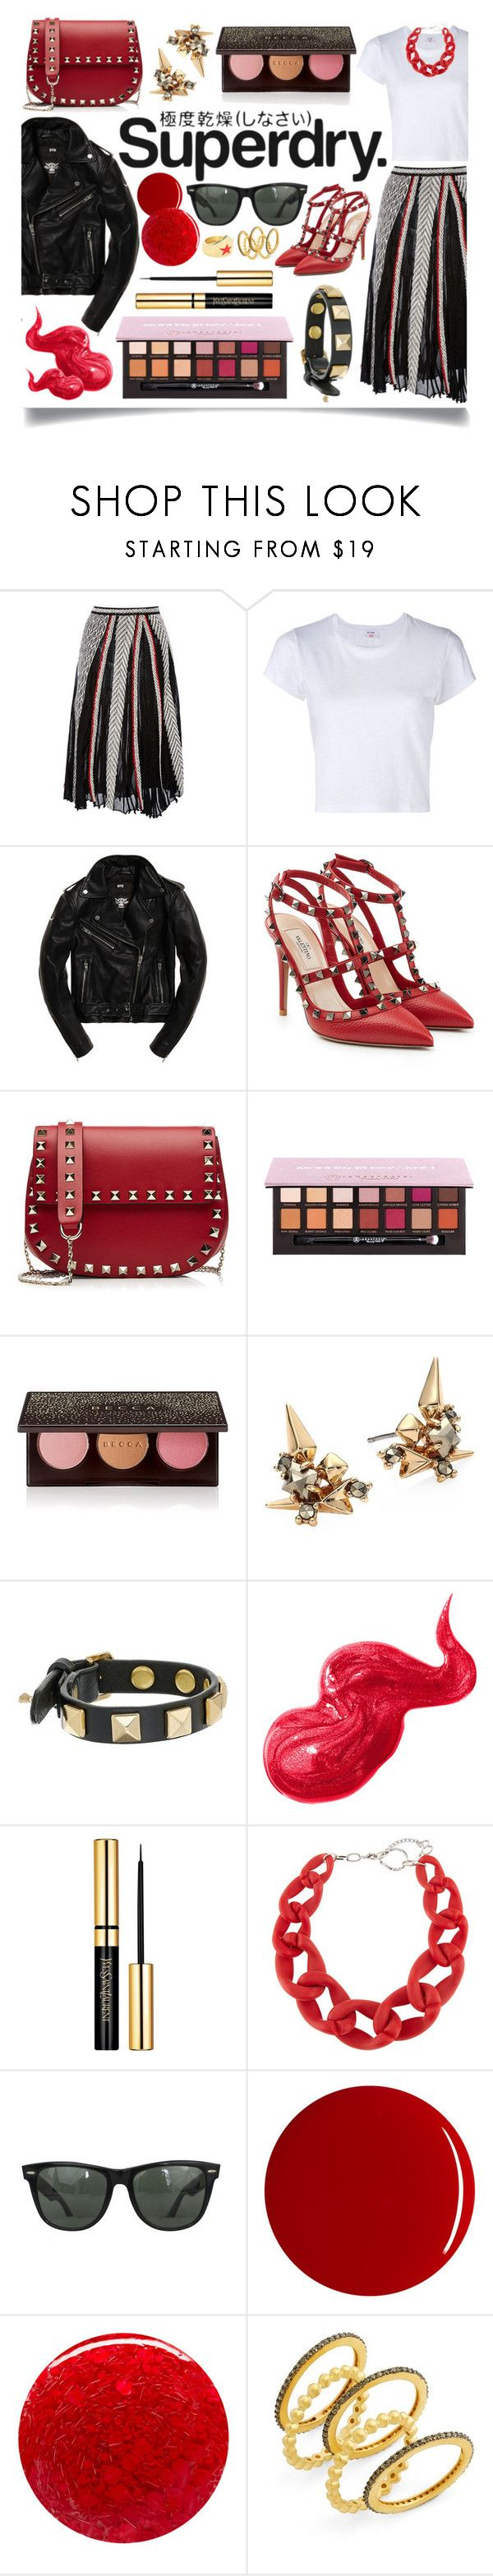 """""""The Cover Up – Jackets by Superdry: Contest Entry"""" by ittie-kittie on Polyvore featuring Emilio Pucci, RE/DONE, Superdry, Valentino, Anastasia Beverly Hills, Becca, Alexis Bittar, Rebecca Minkoff, Bobbi Brown Cosmetics and DIANA BROUSSARD"""